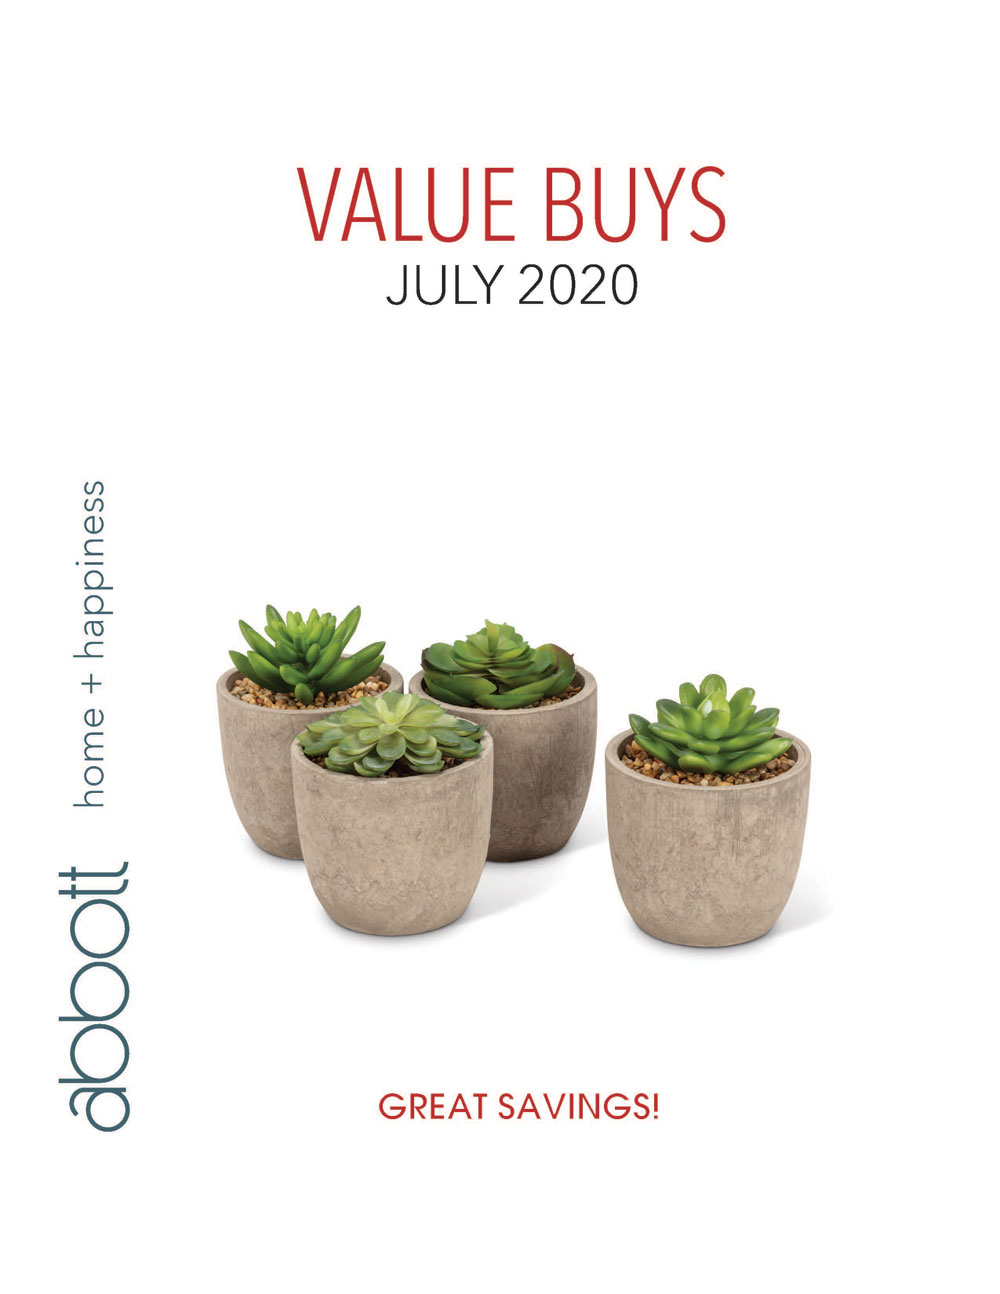 https://assets.abbottcollection.com/wp-content/uploads/2020/07/03120505/Value-Buys-July-2020-cover-web.jpg